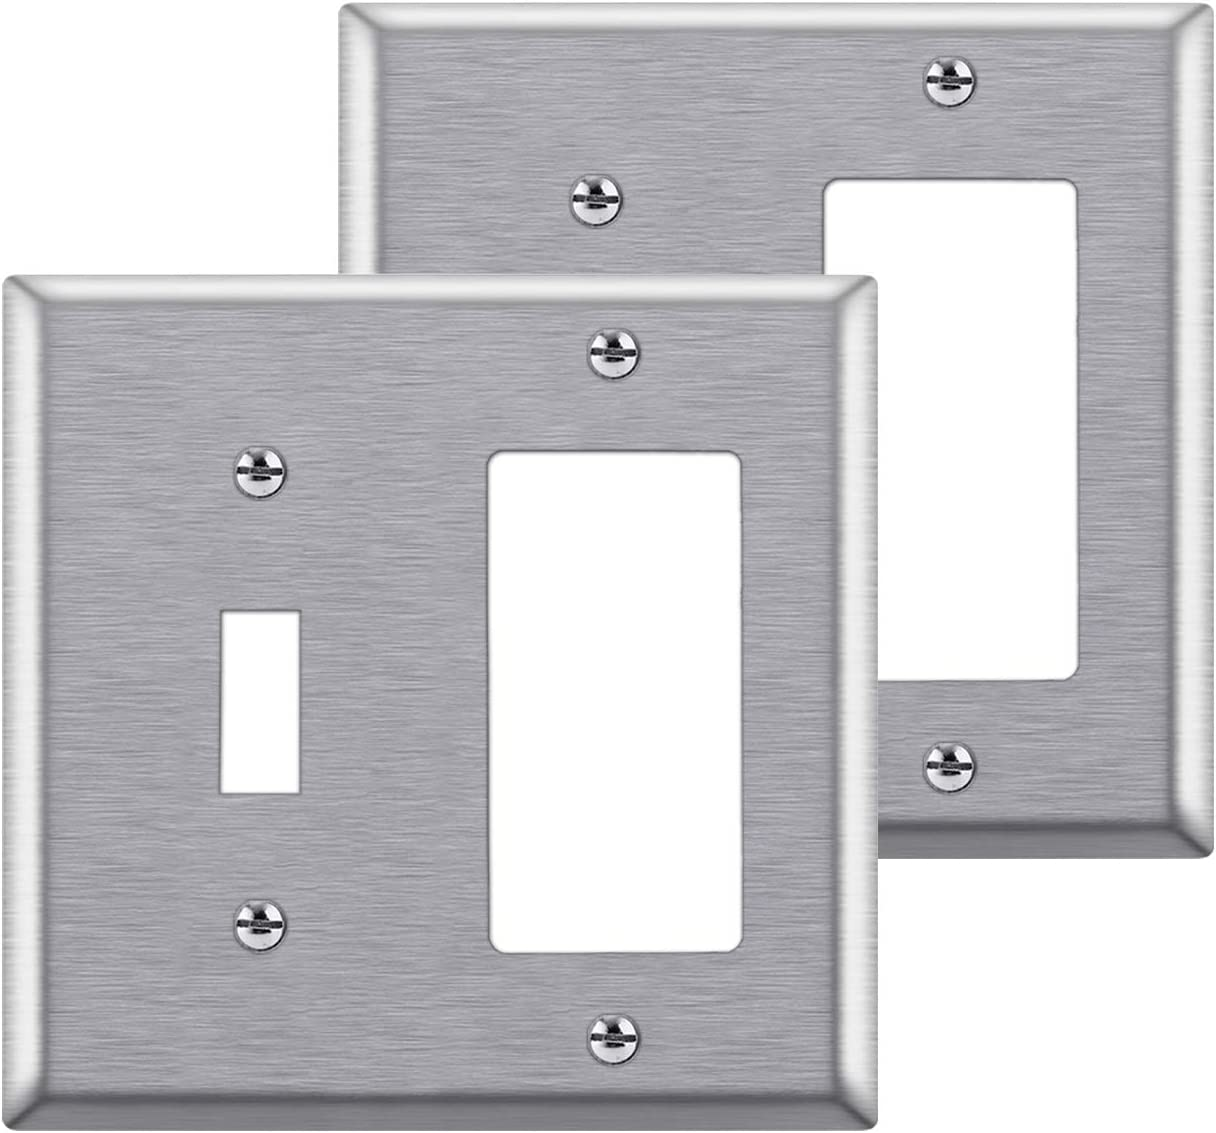 [2 Pack] BESTTEN 2-Gang Combination Metal Wall Plate, 1-Toggle/1-Decor, Standard Size, Anti-Corrosion Stainless Steel Outlet and Switch Cover, UL Listed, Silver